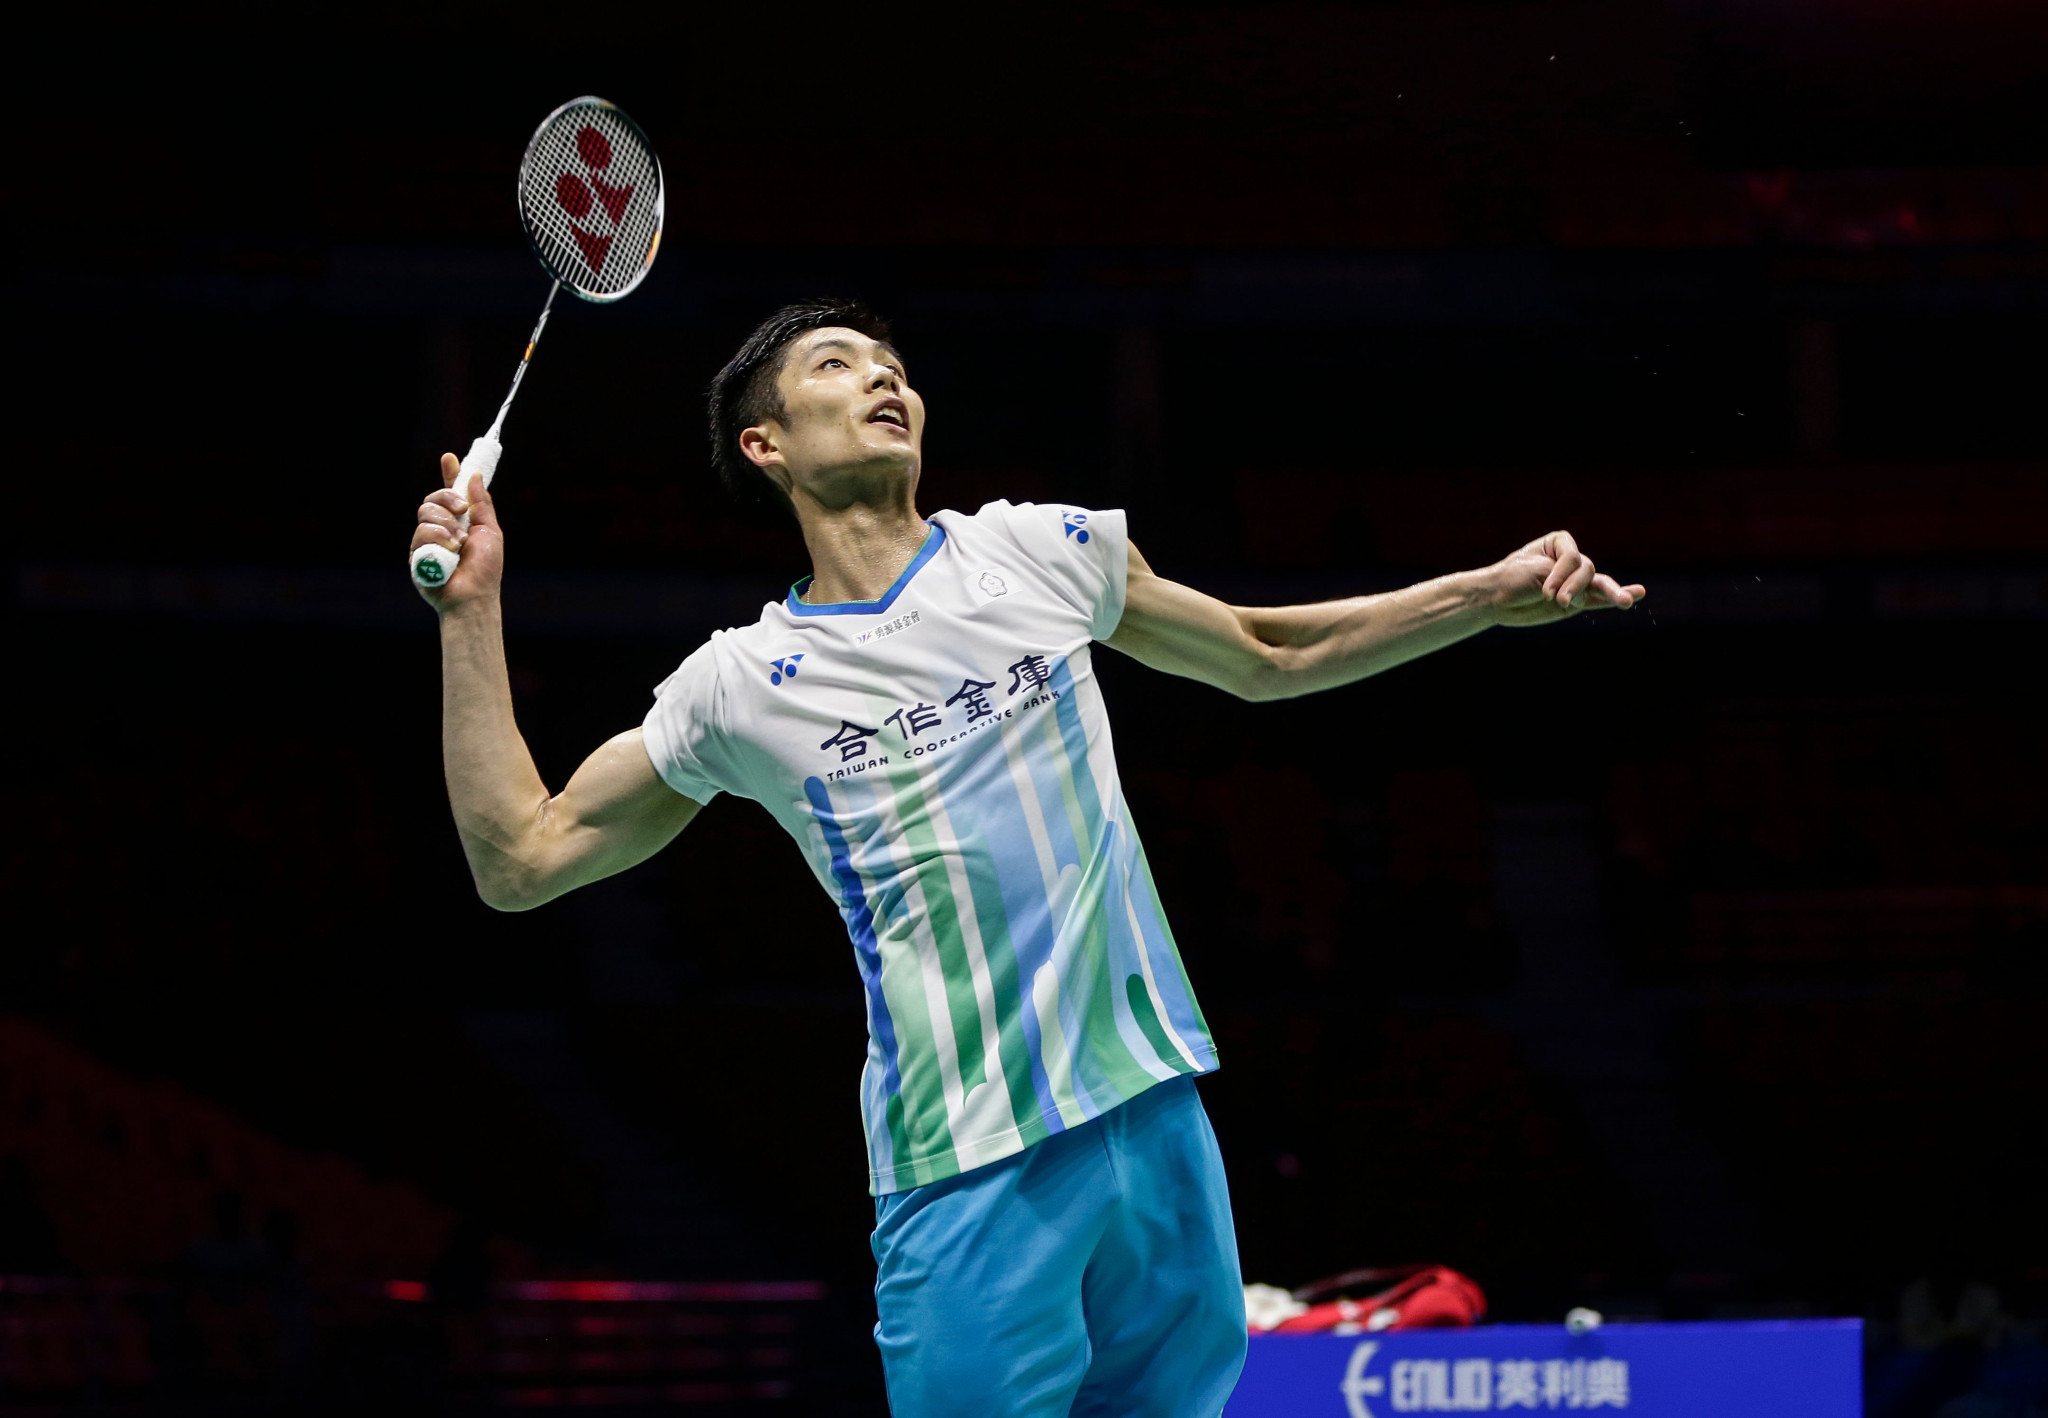 Chinese Taipei's Chou top-seeded at BWF Australian Open - but China's Lin Dan lurks